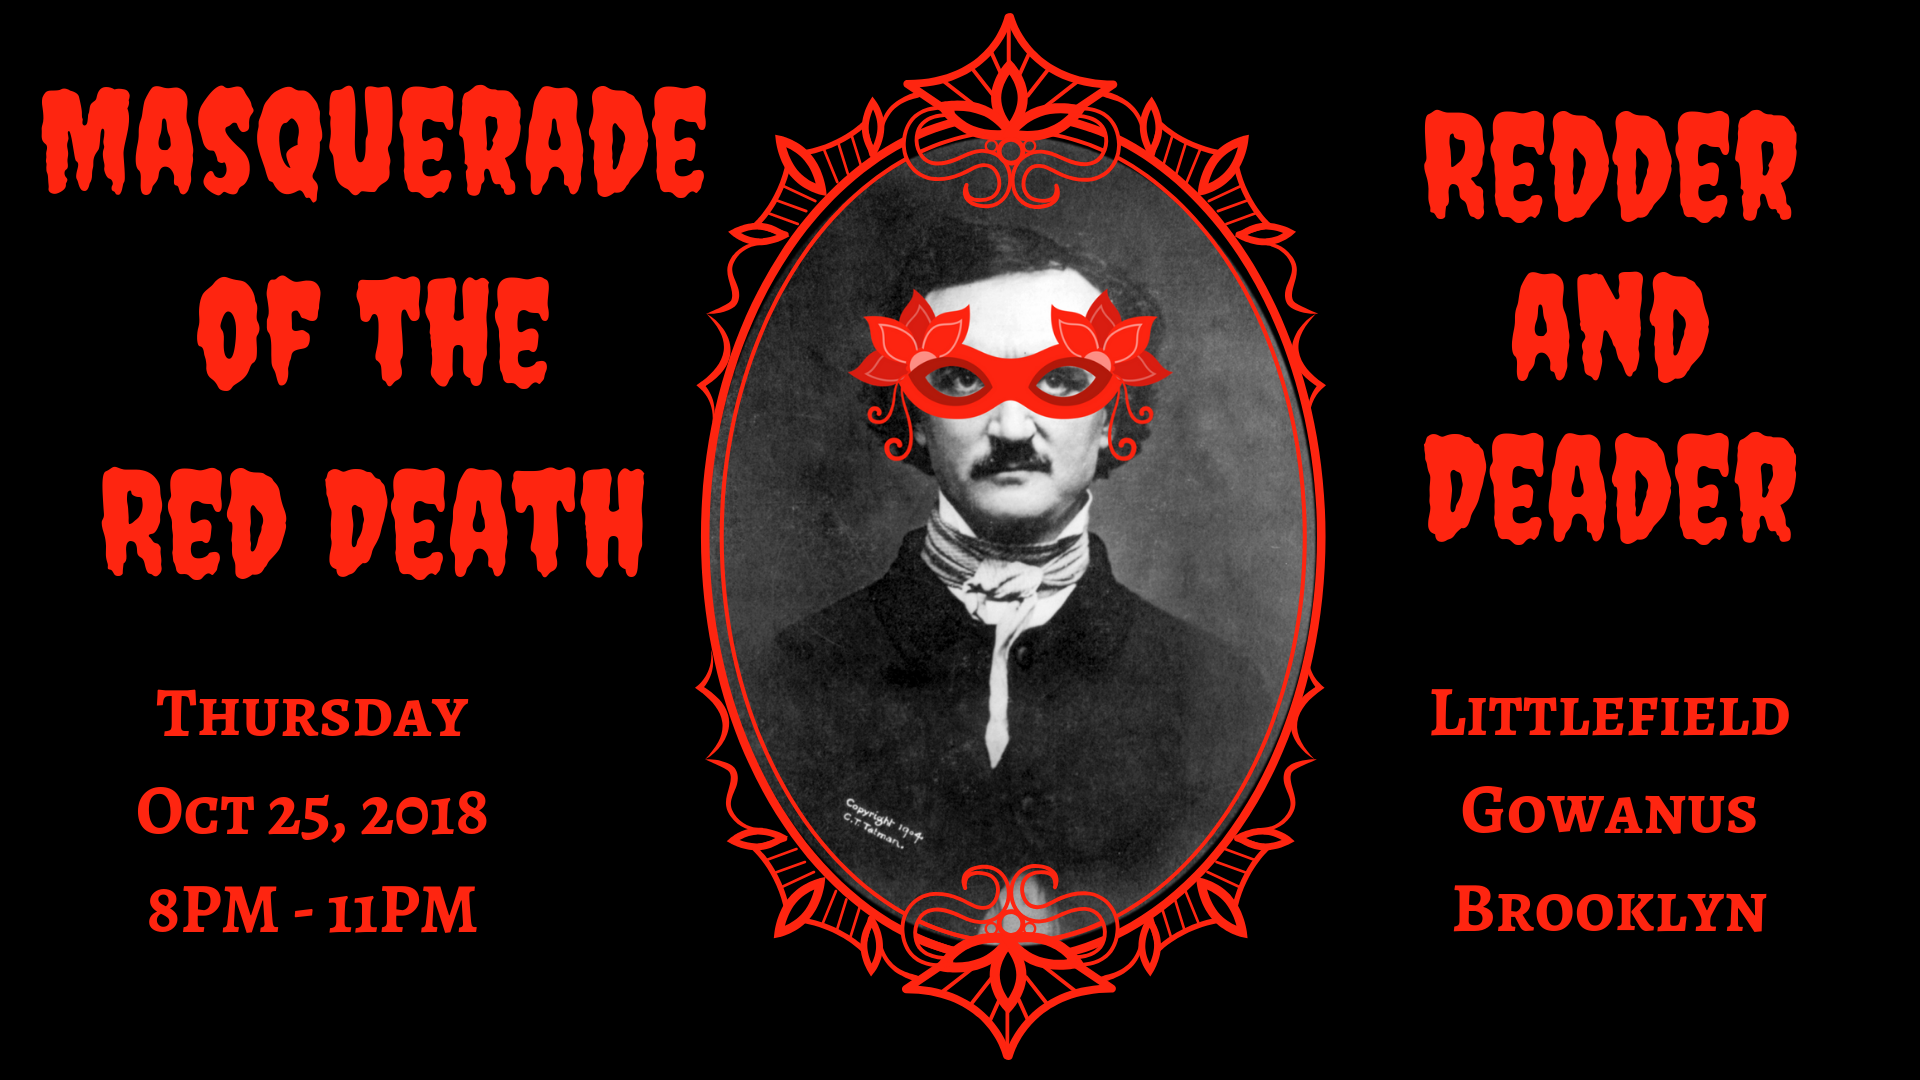 Be Our Guest For Masquerade Of The Red Death Redder And Deader If